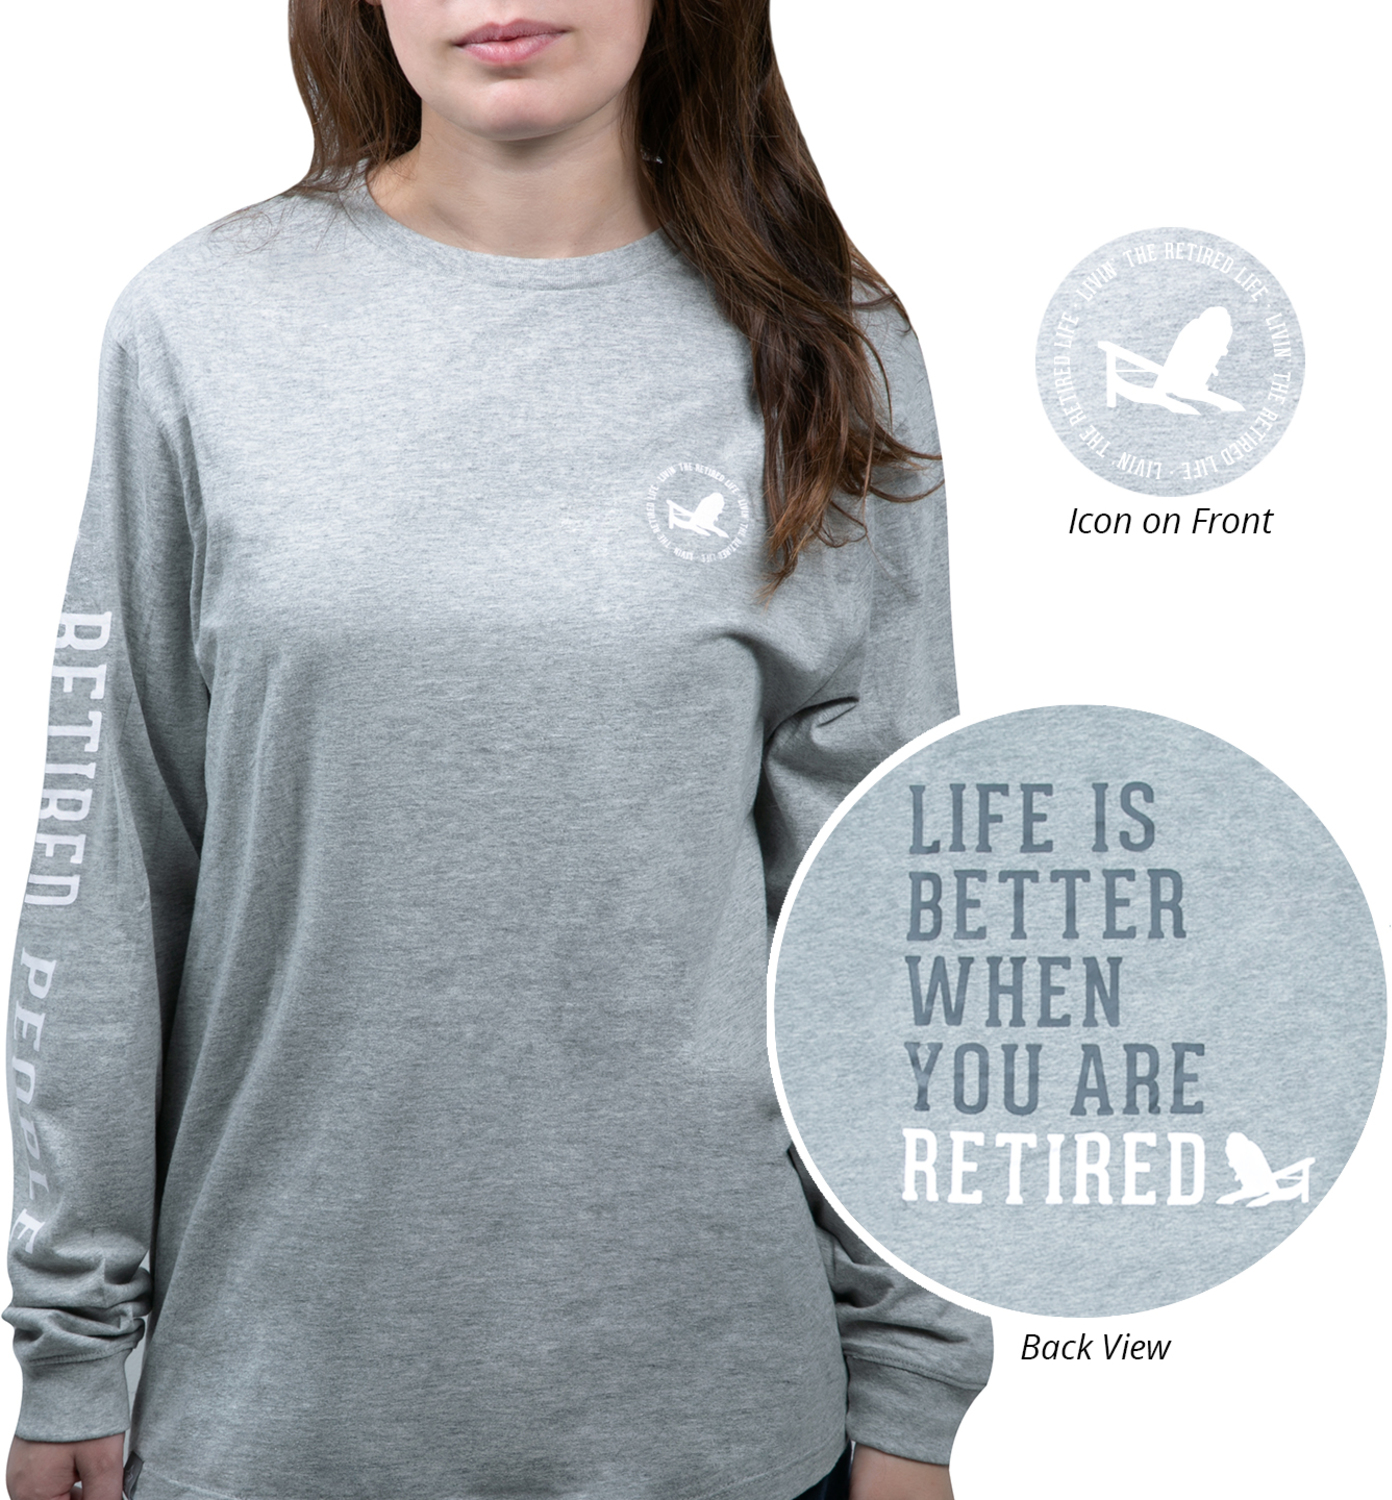 Retired People by We People - Retired People - Small Heather Gray Unisex Long Sleeve T-Shirt